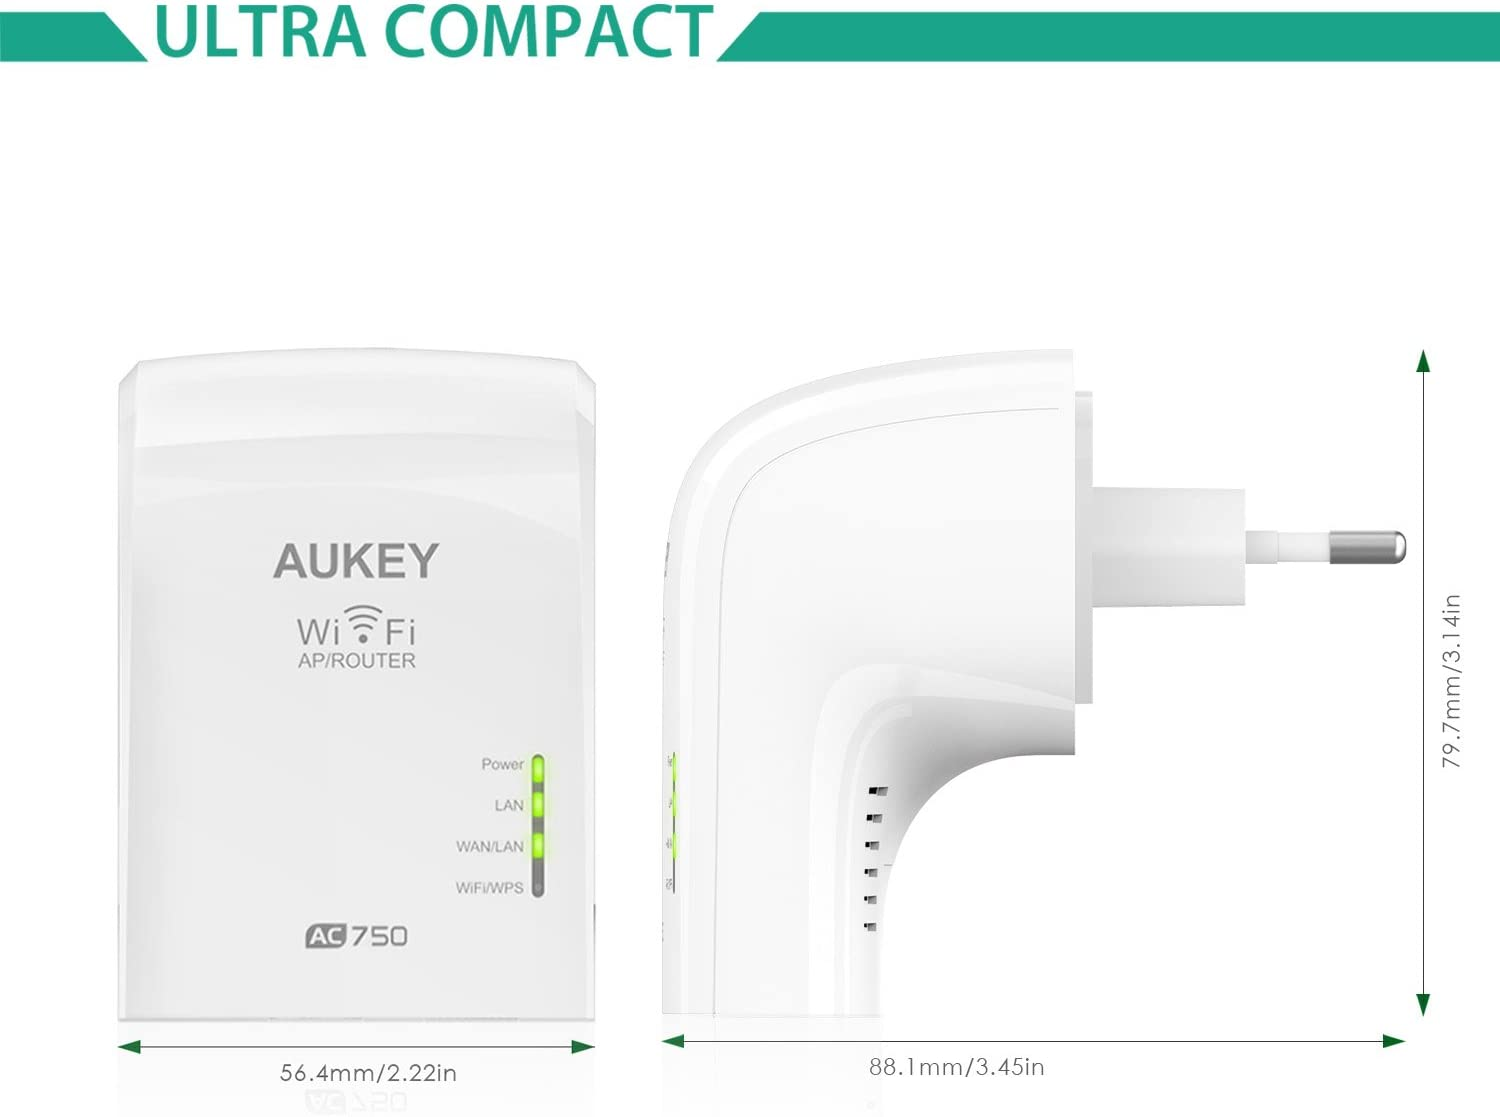 Aukey WF-R1 - Repetidor de red (5 GHz/ 2.4 GHz, 433Mbps/ 300Mbps, IEEE 802.11ac, 2 puertos W/LAN + LAN) color blanco